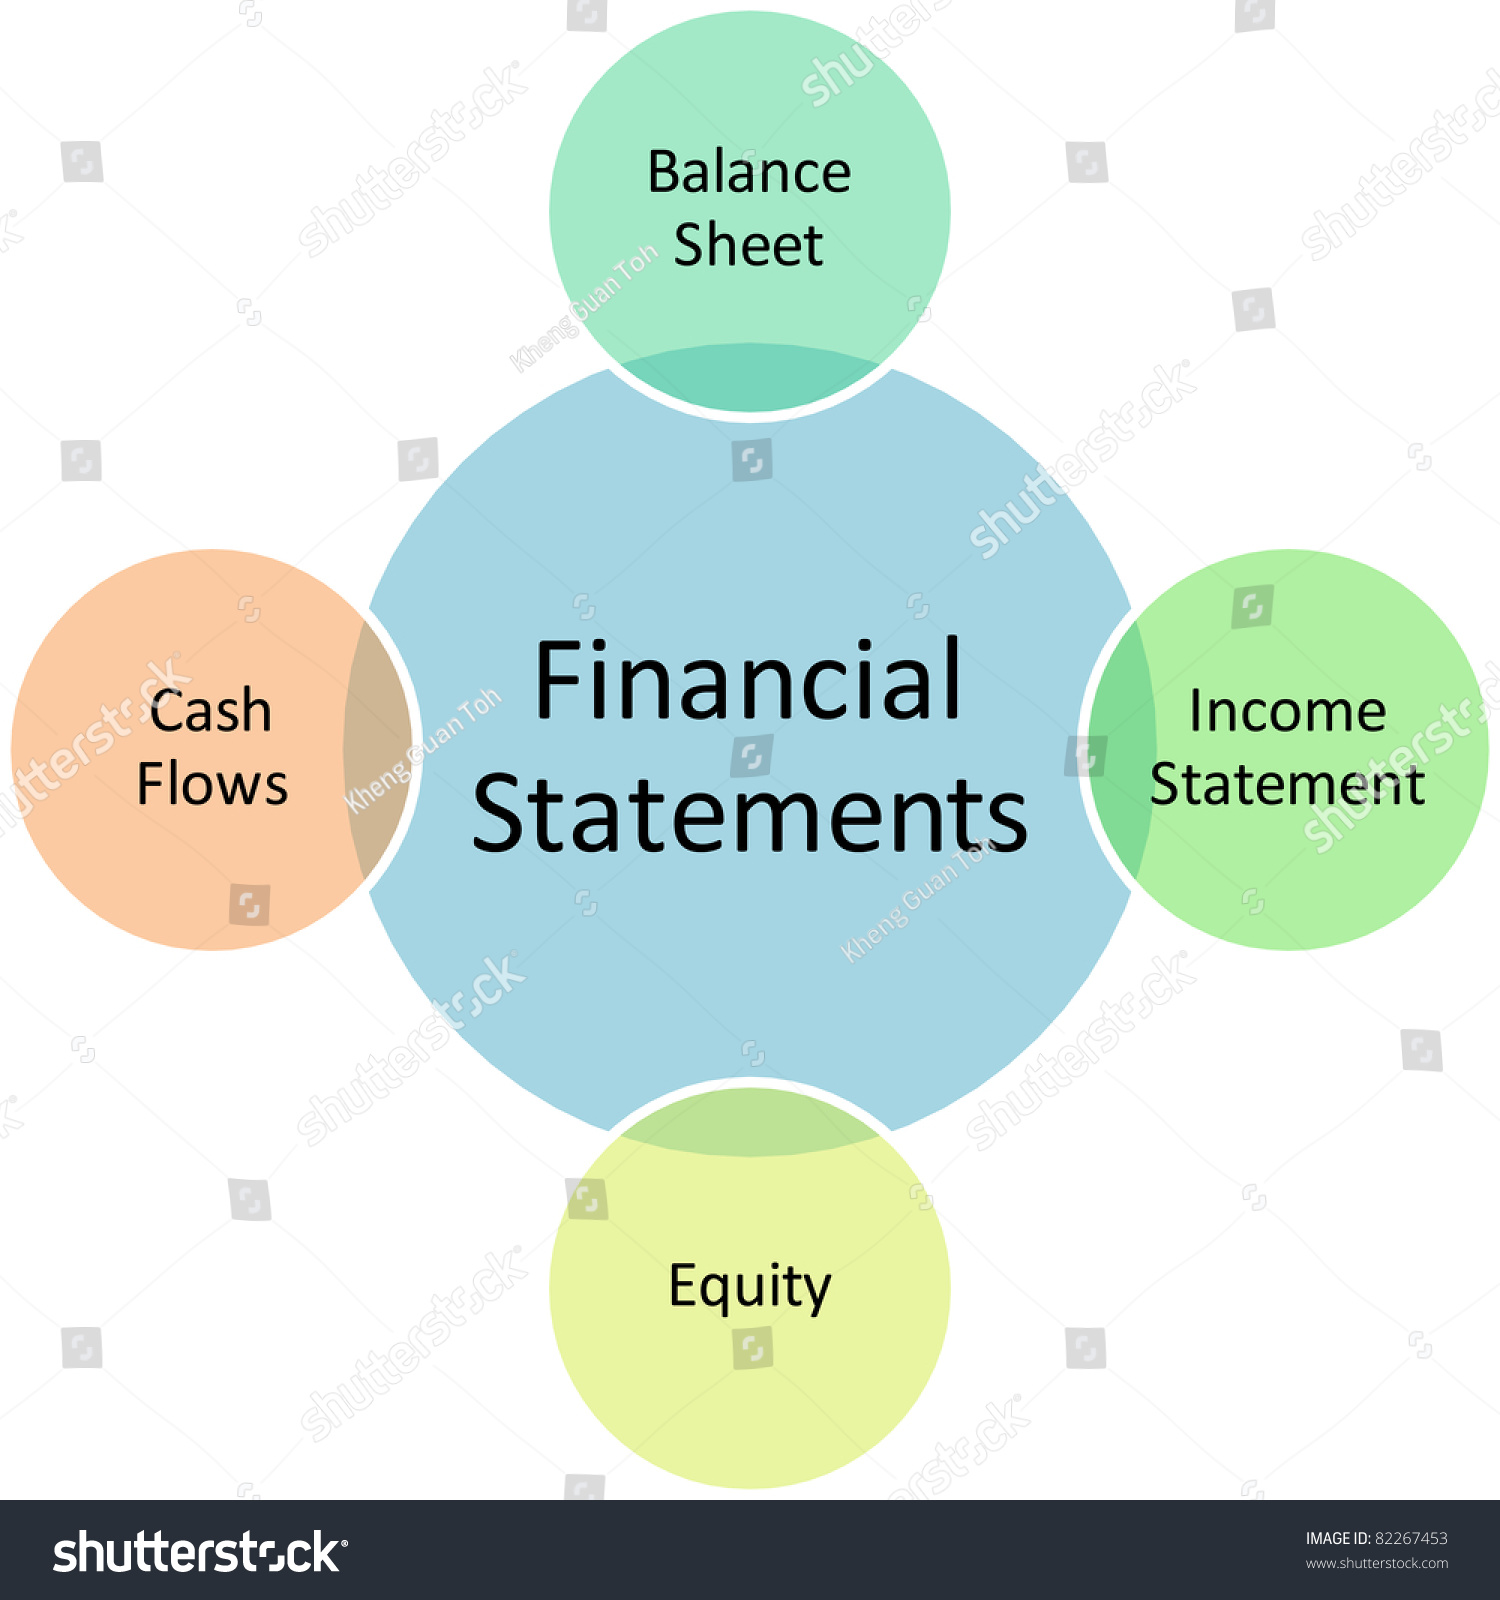 Illustrative financial statements: First-time adopters